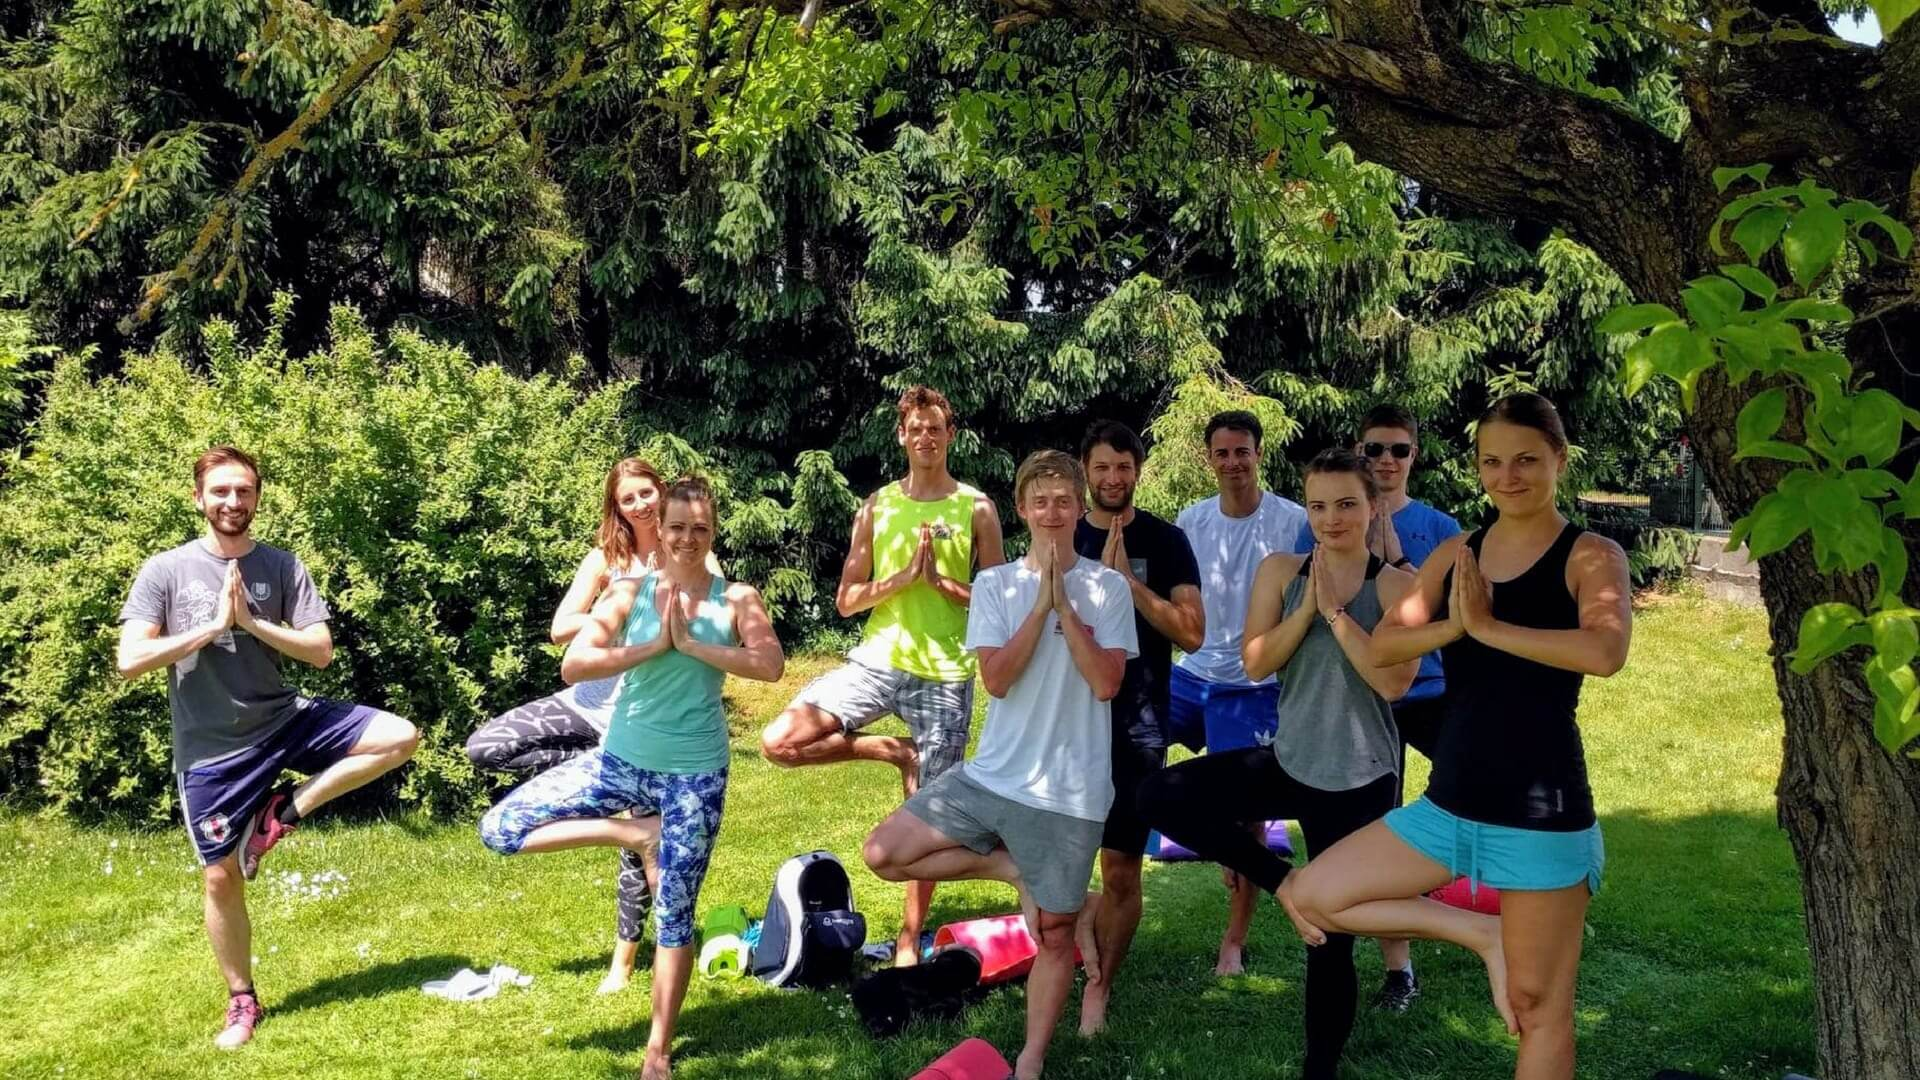 The Tractive team enjoying yoga class as a corporate wellness practice